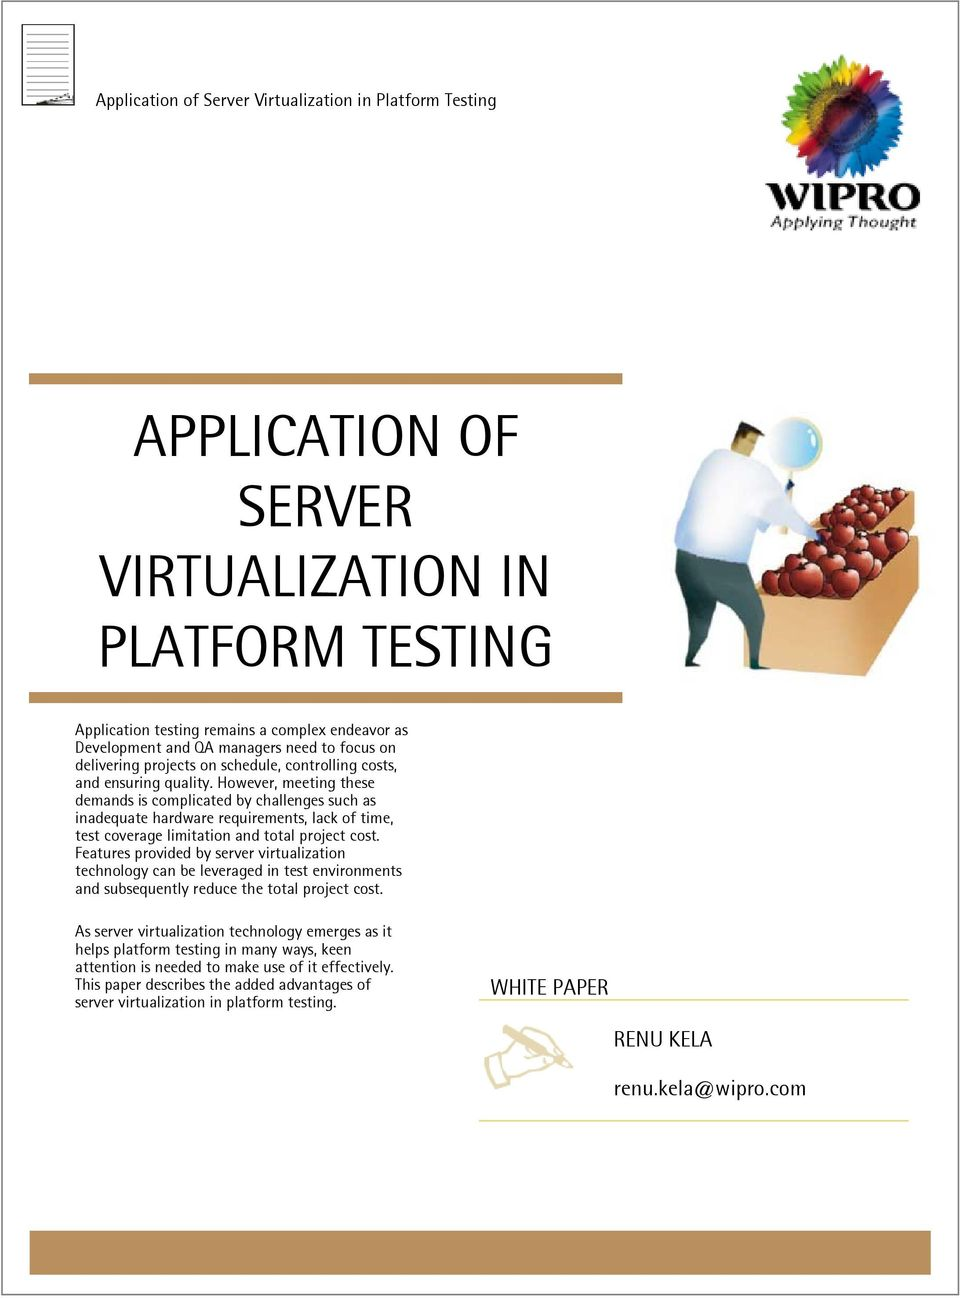 Features provided by server virtualization technology can be leveraged in test environments and subsequently reduce the total project cost.